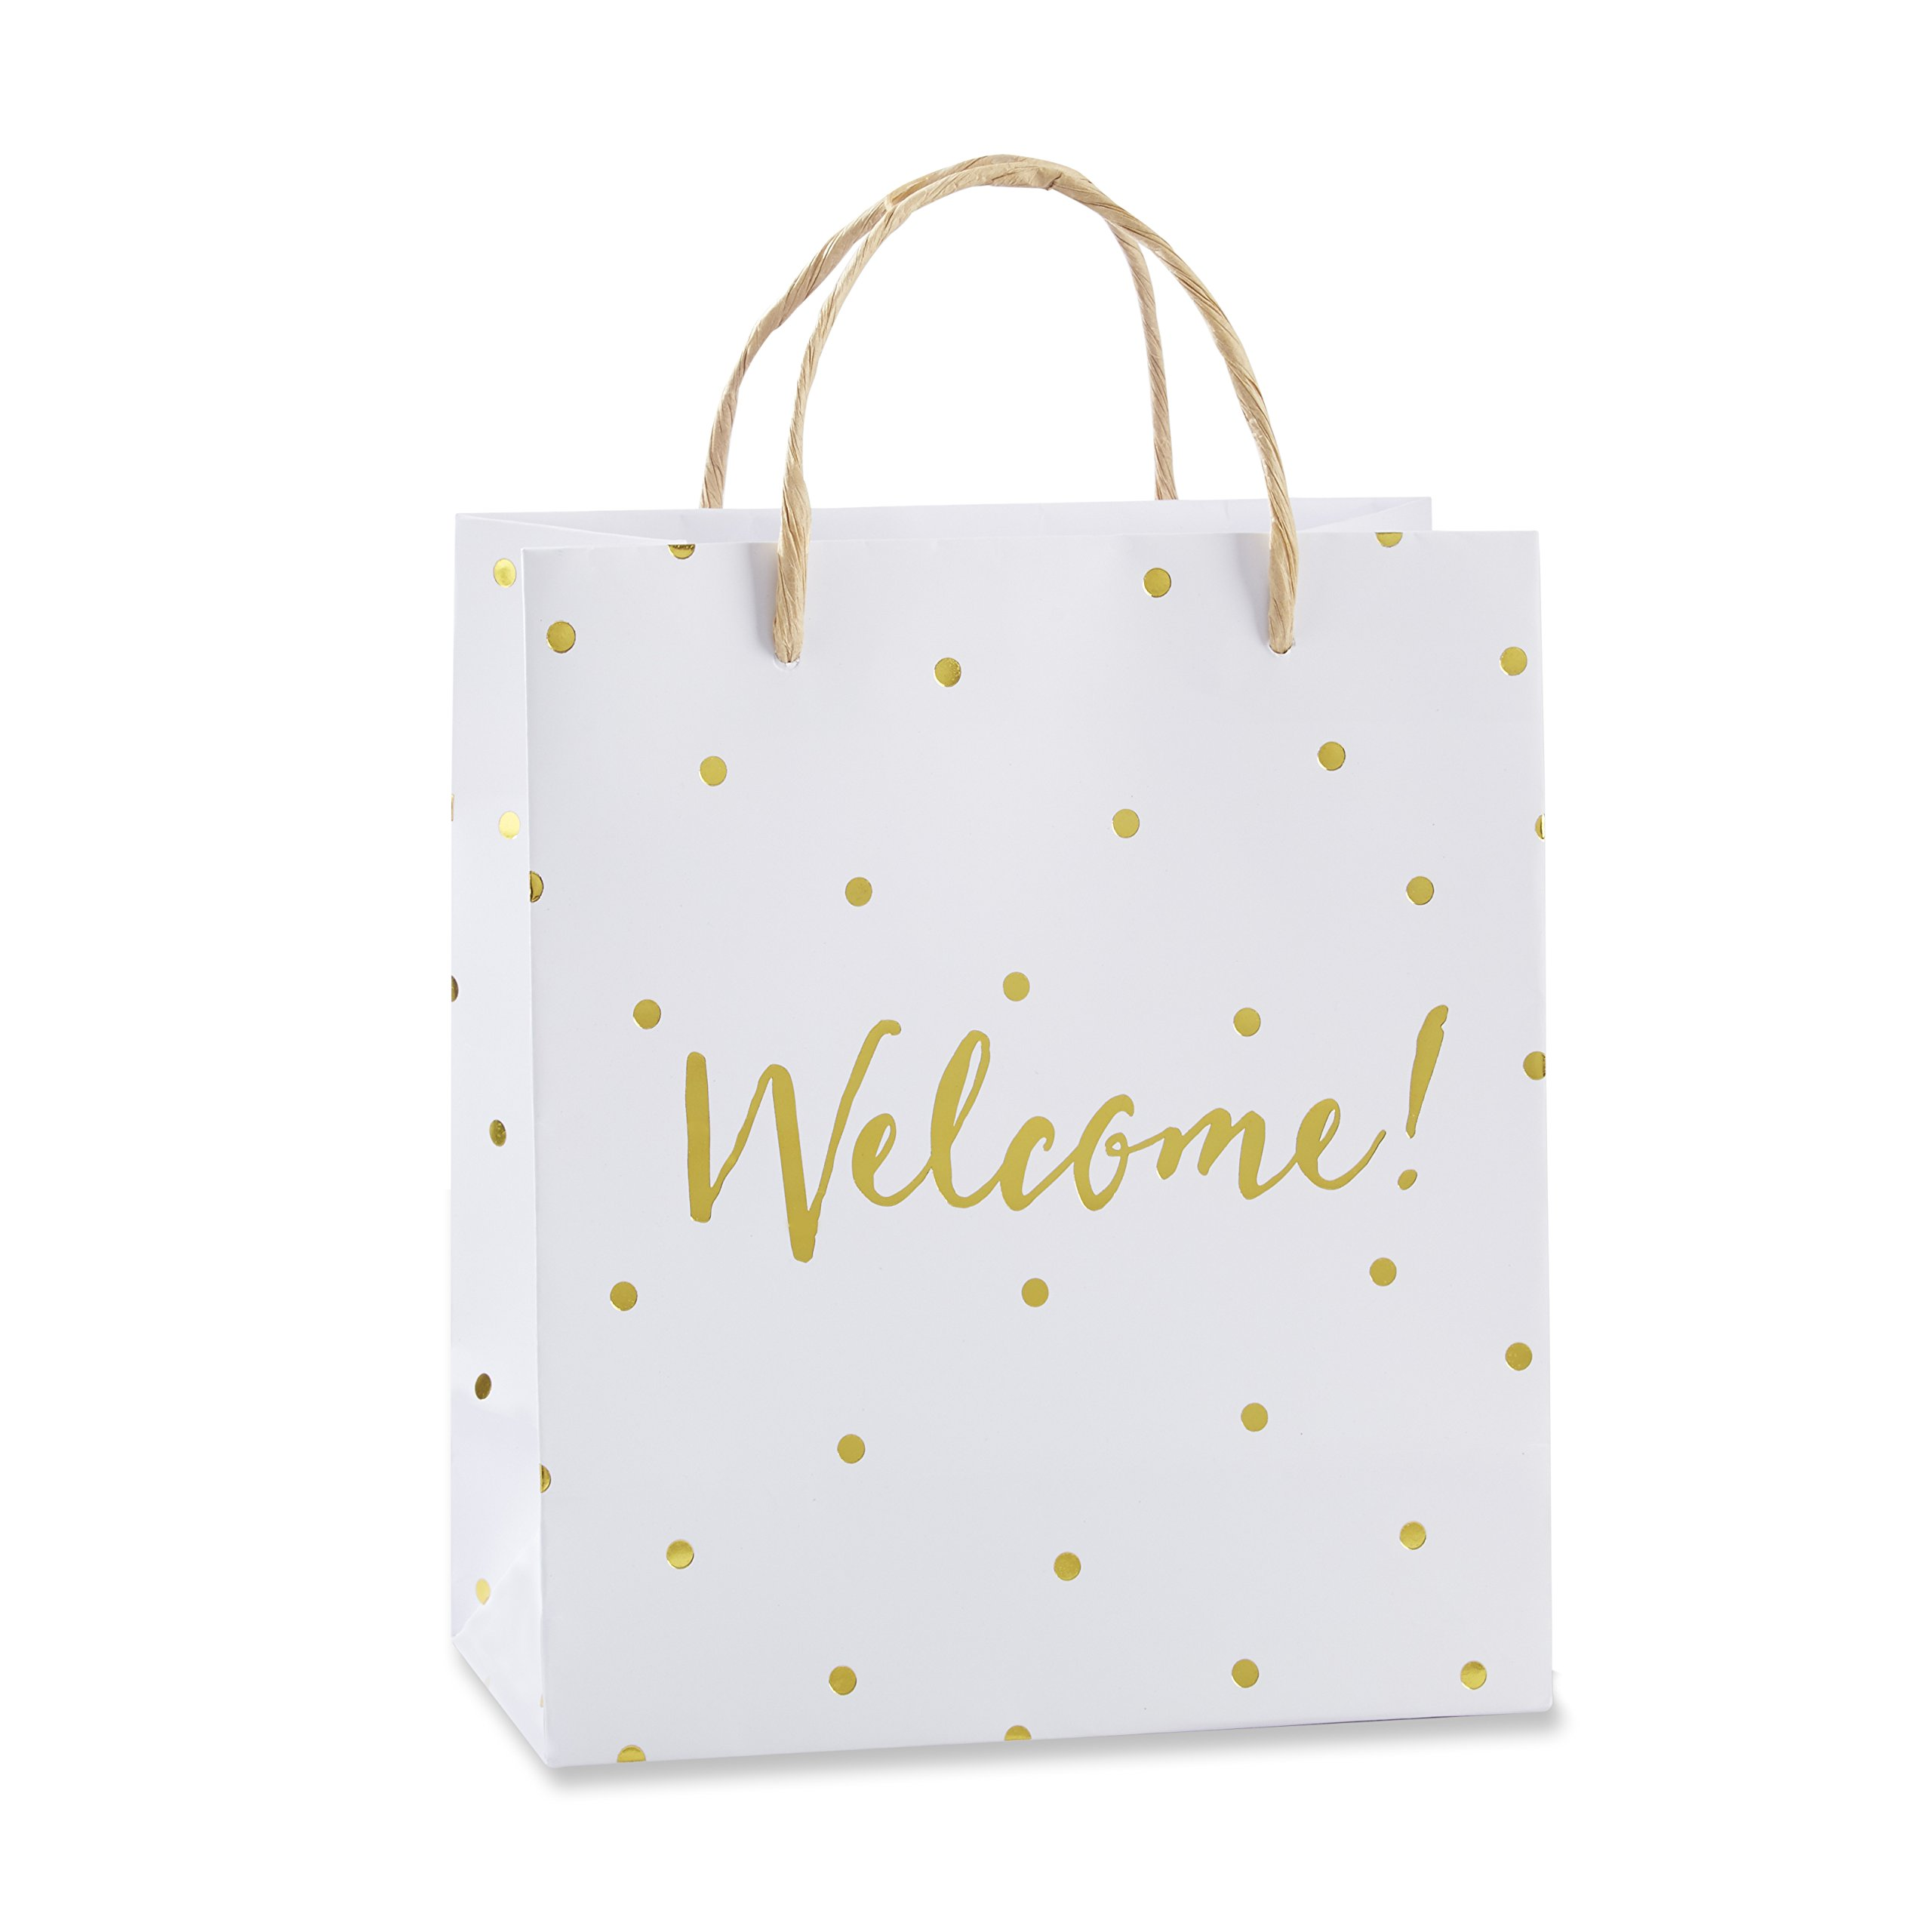 Kate Aspen Party Favor and Gift Bag, White and Gold Foil Polka Dot, Welcome, Set of 12